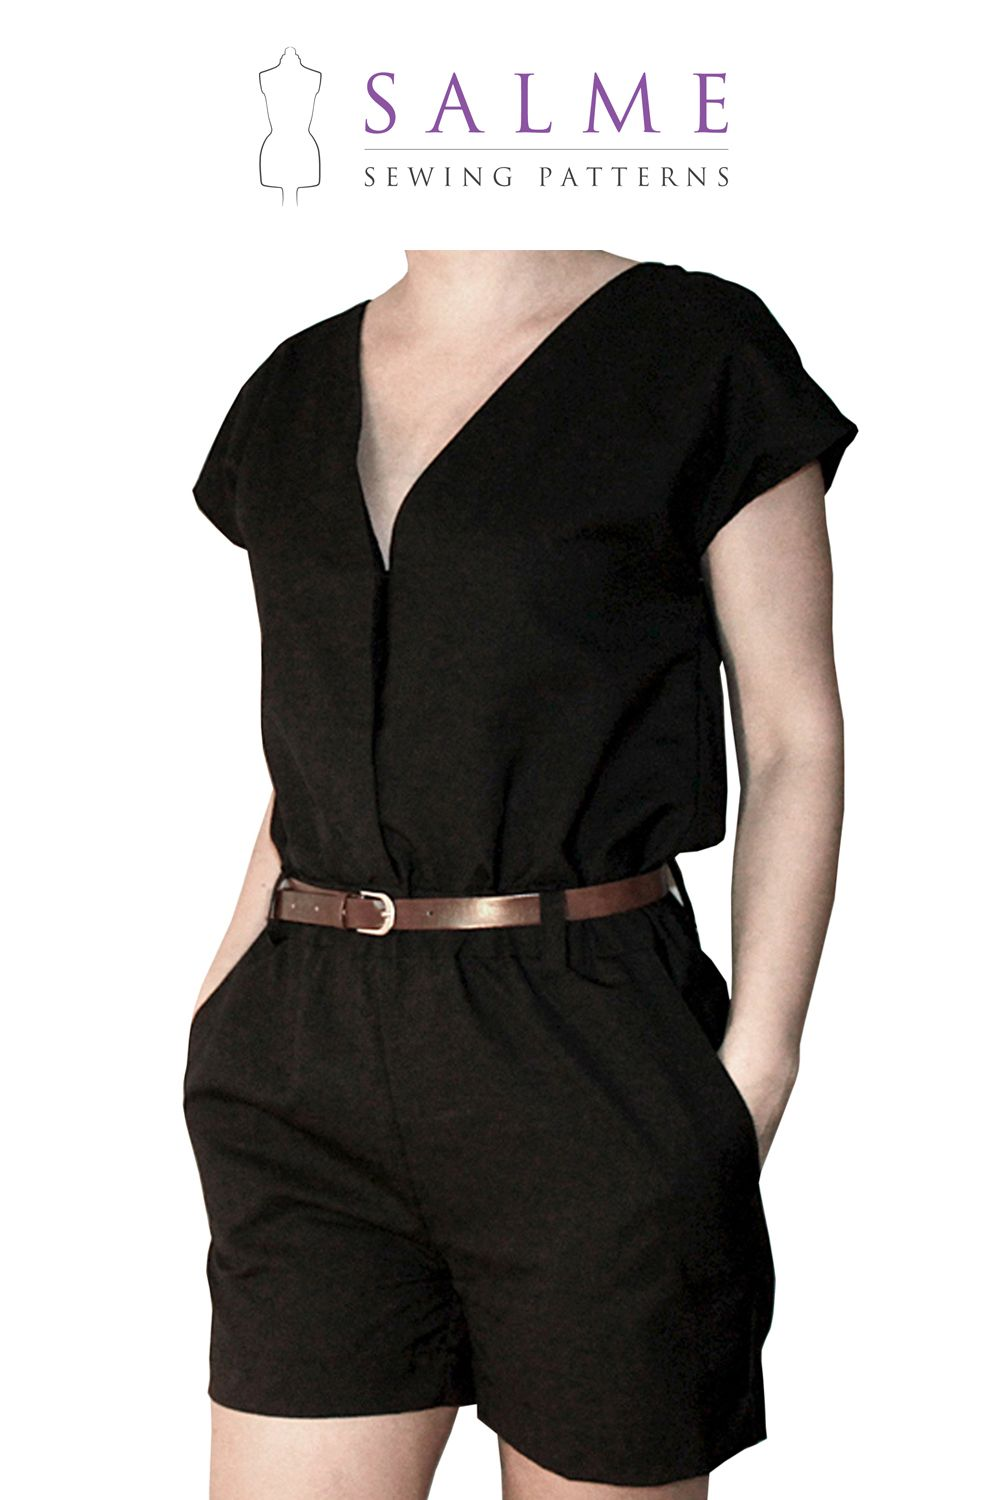 Salme Sewing Patterns 113 Playsuit Downloadable Pattern ...